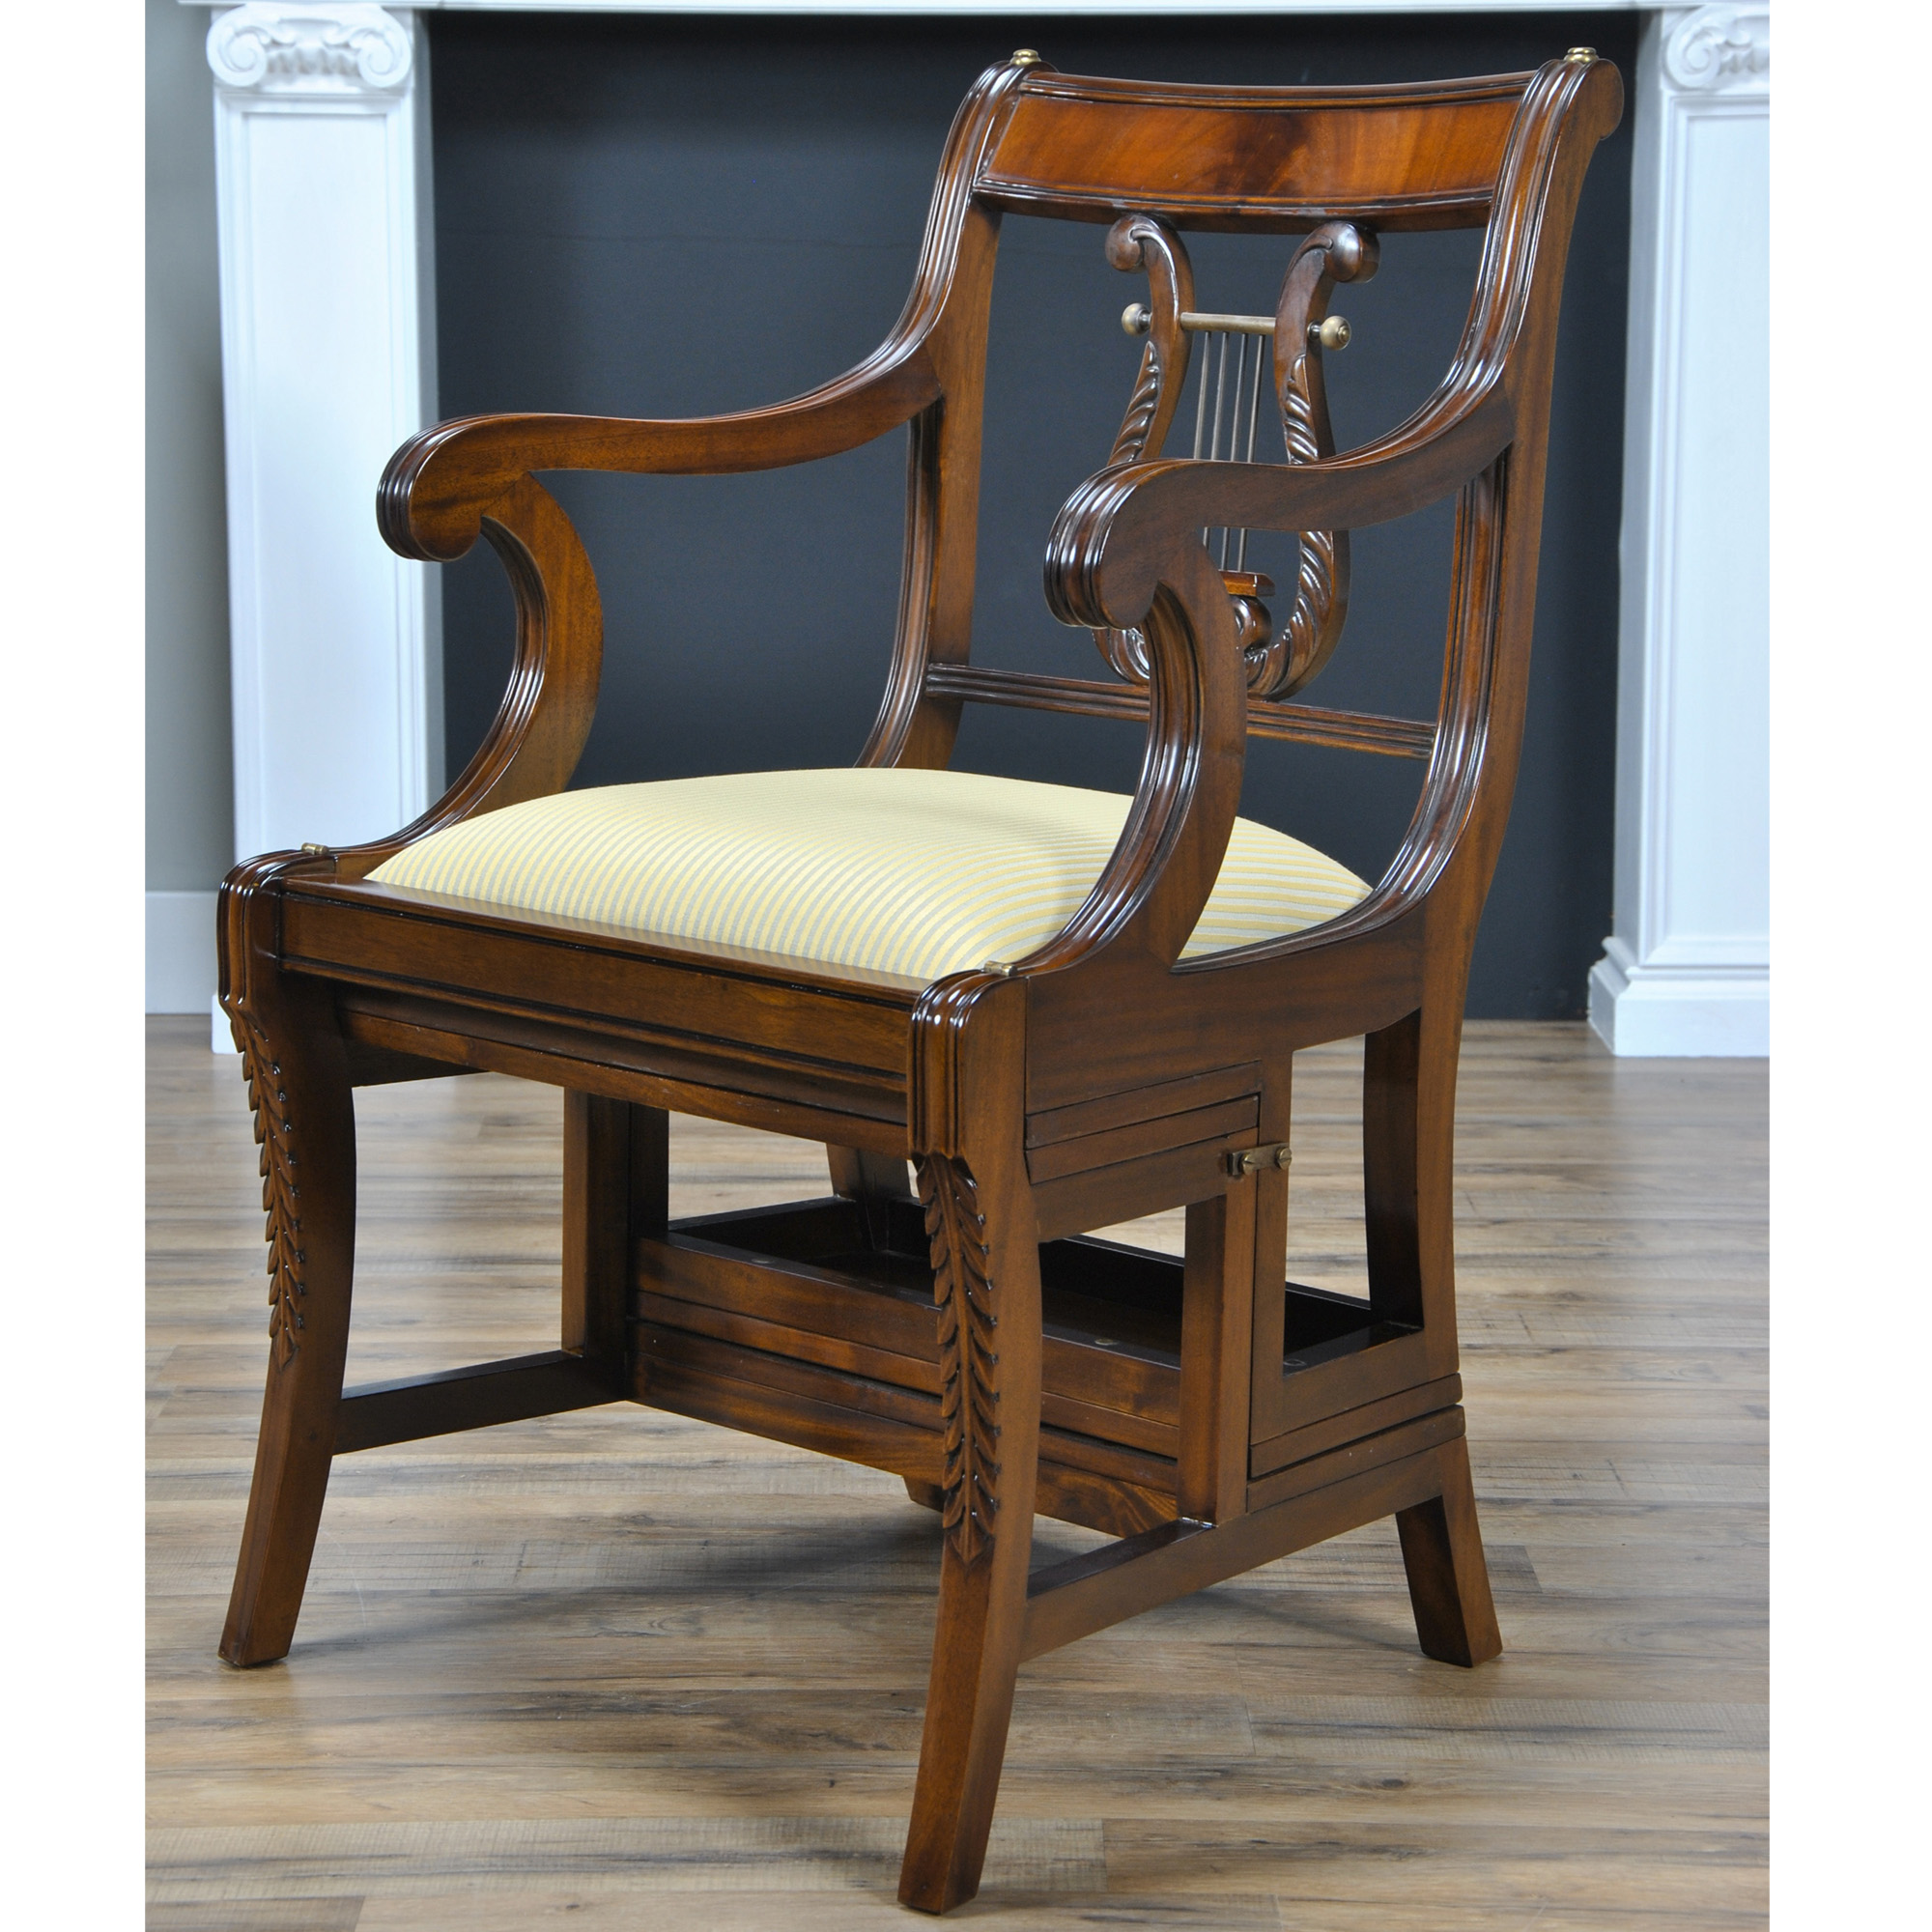 Mahogany Home Library Office: Mahogany Library Chair, Niagara Furniture, Lyre Back Chair